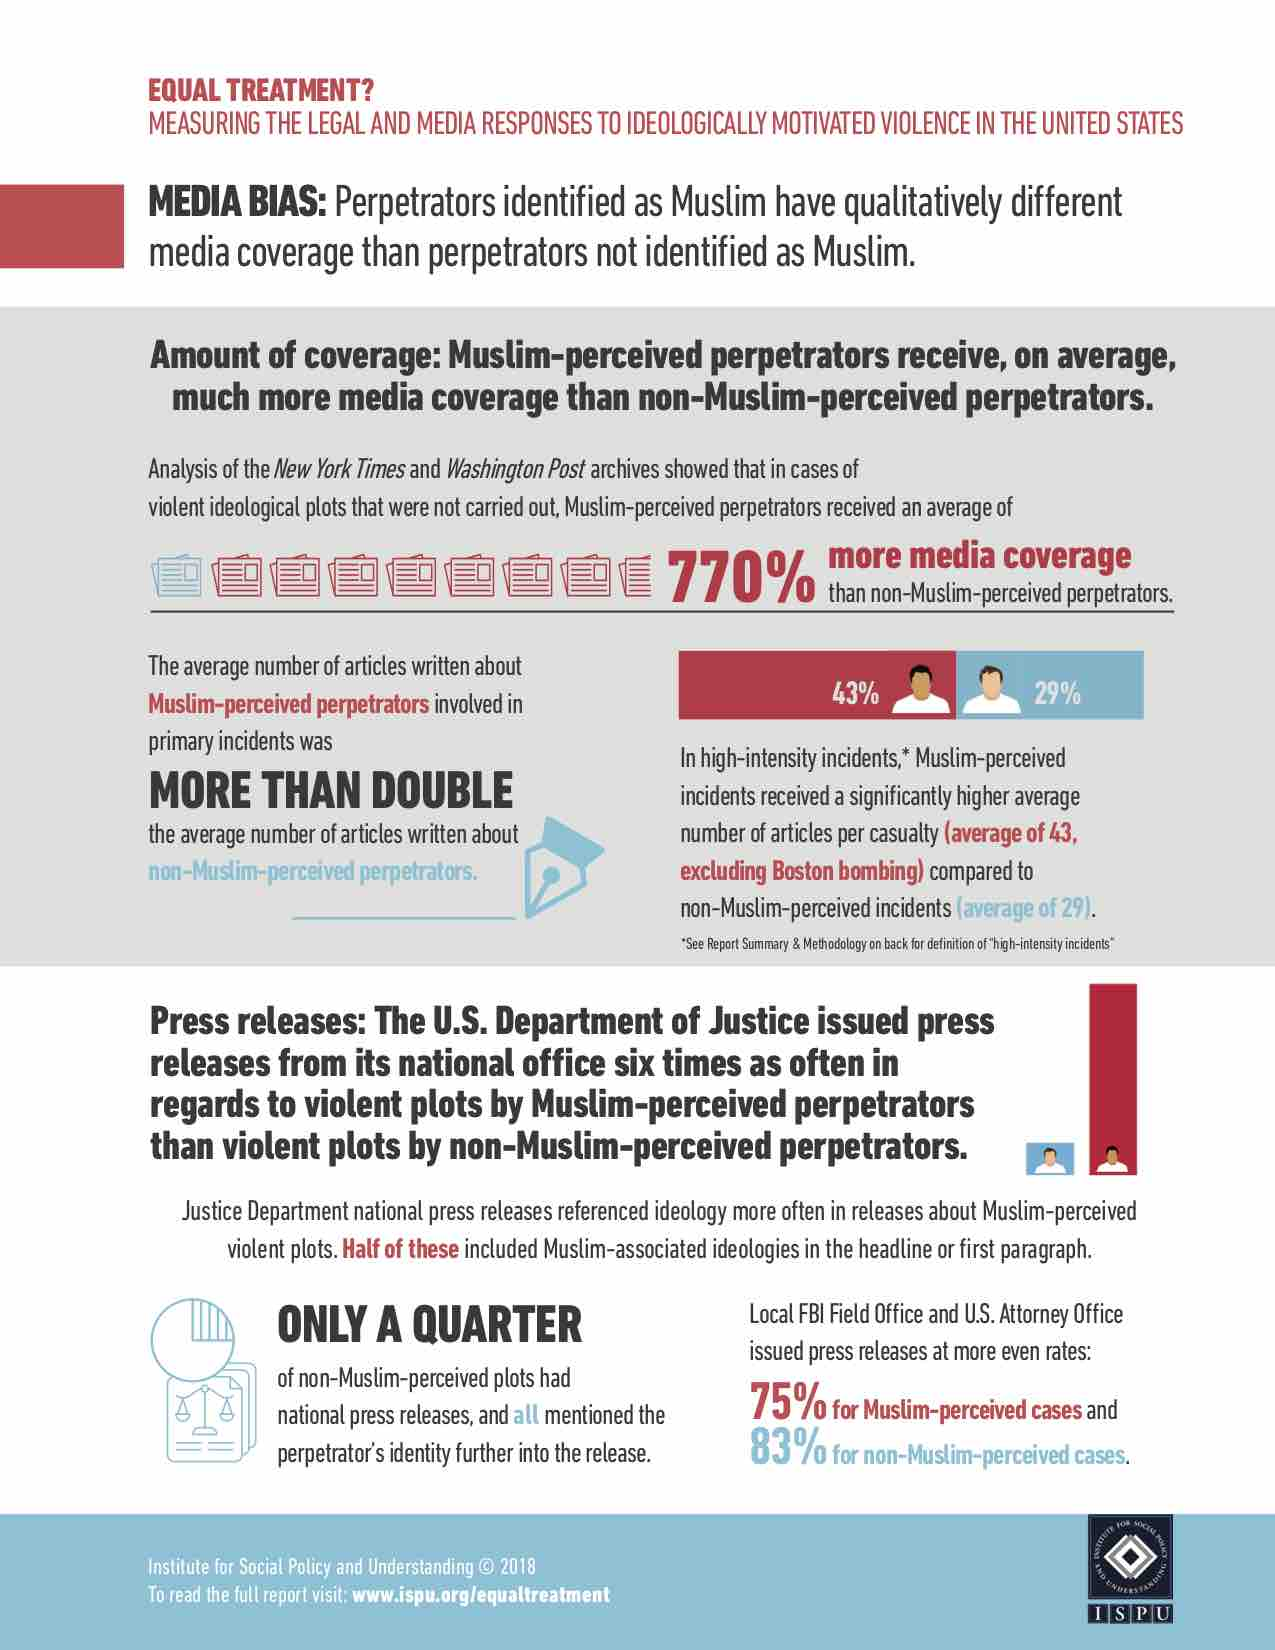 Equal Treatment Infographic 3